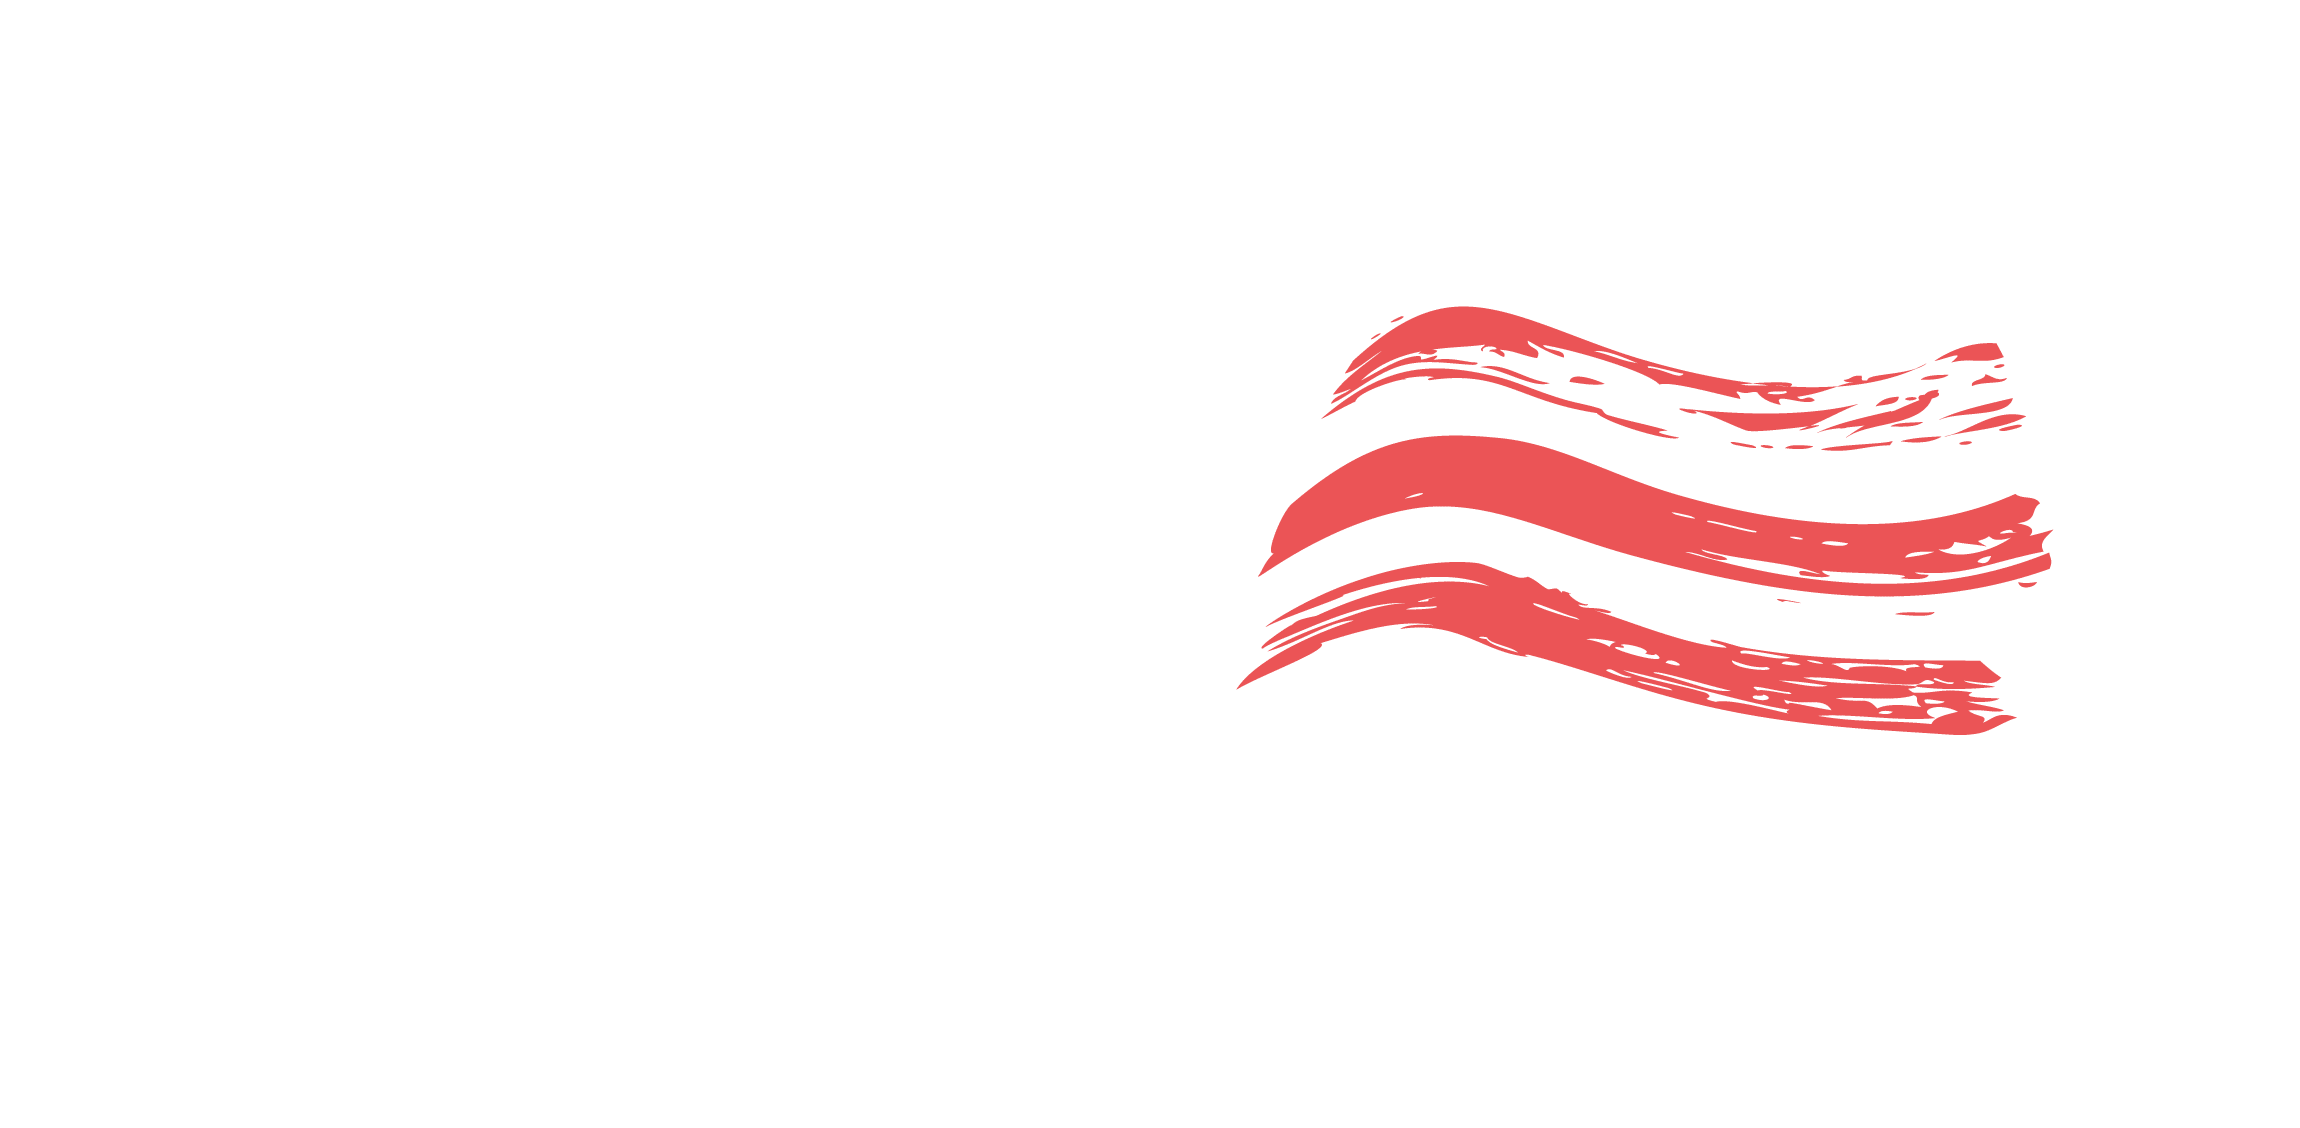 Attorney Group logo